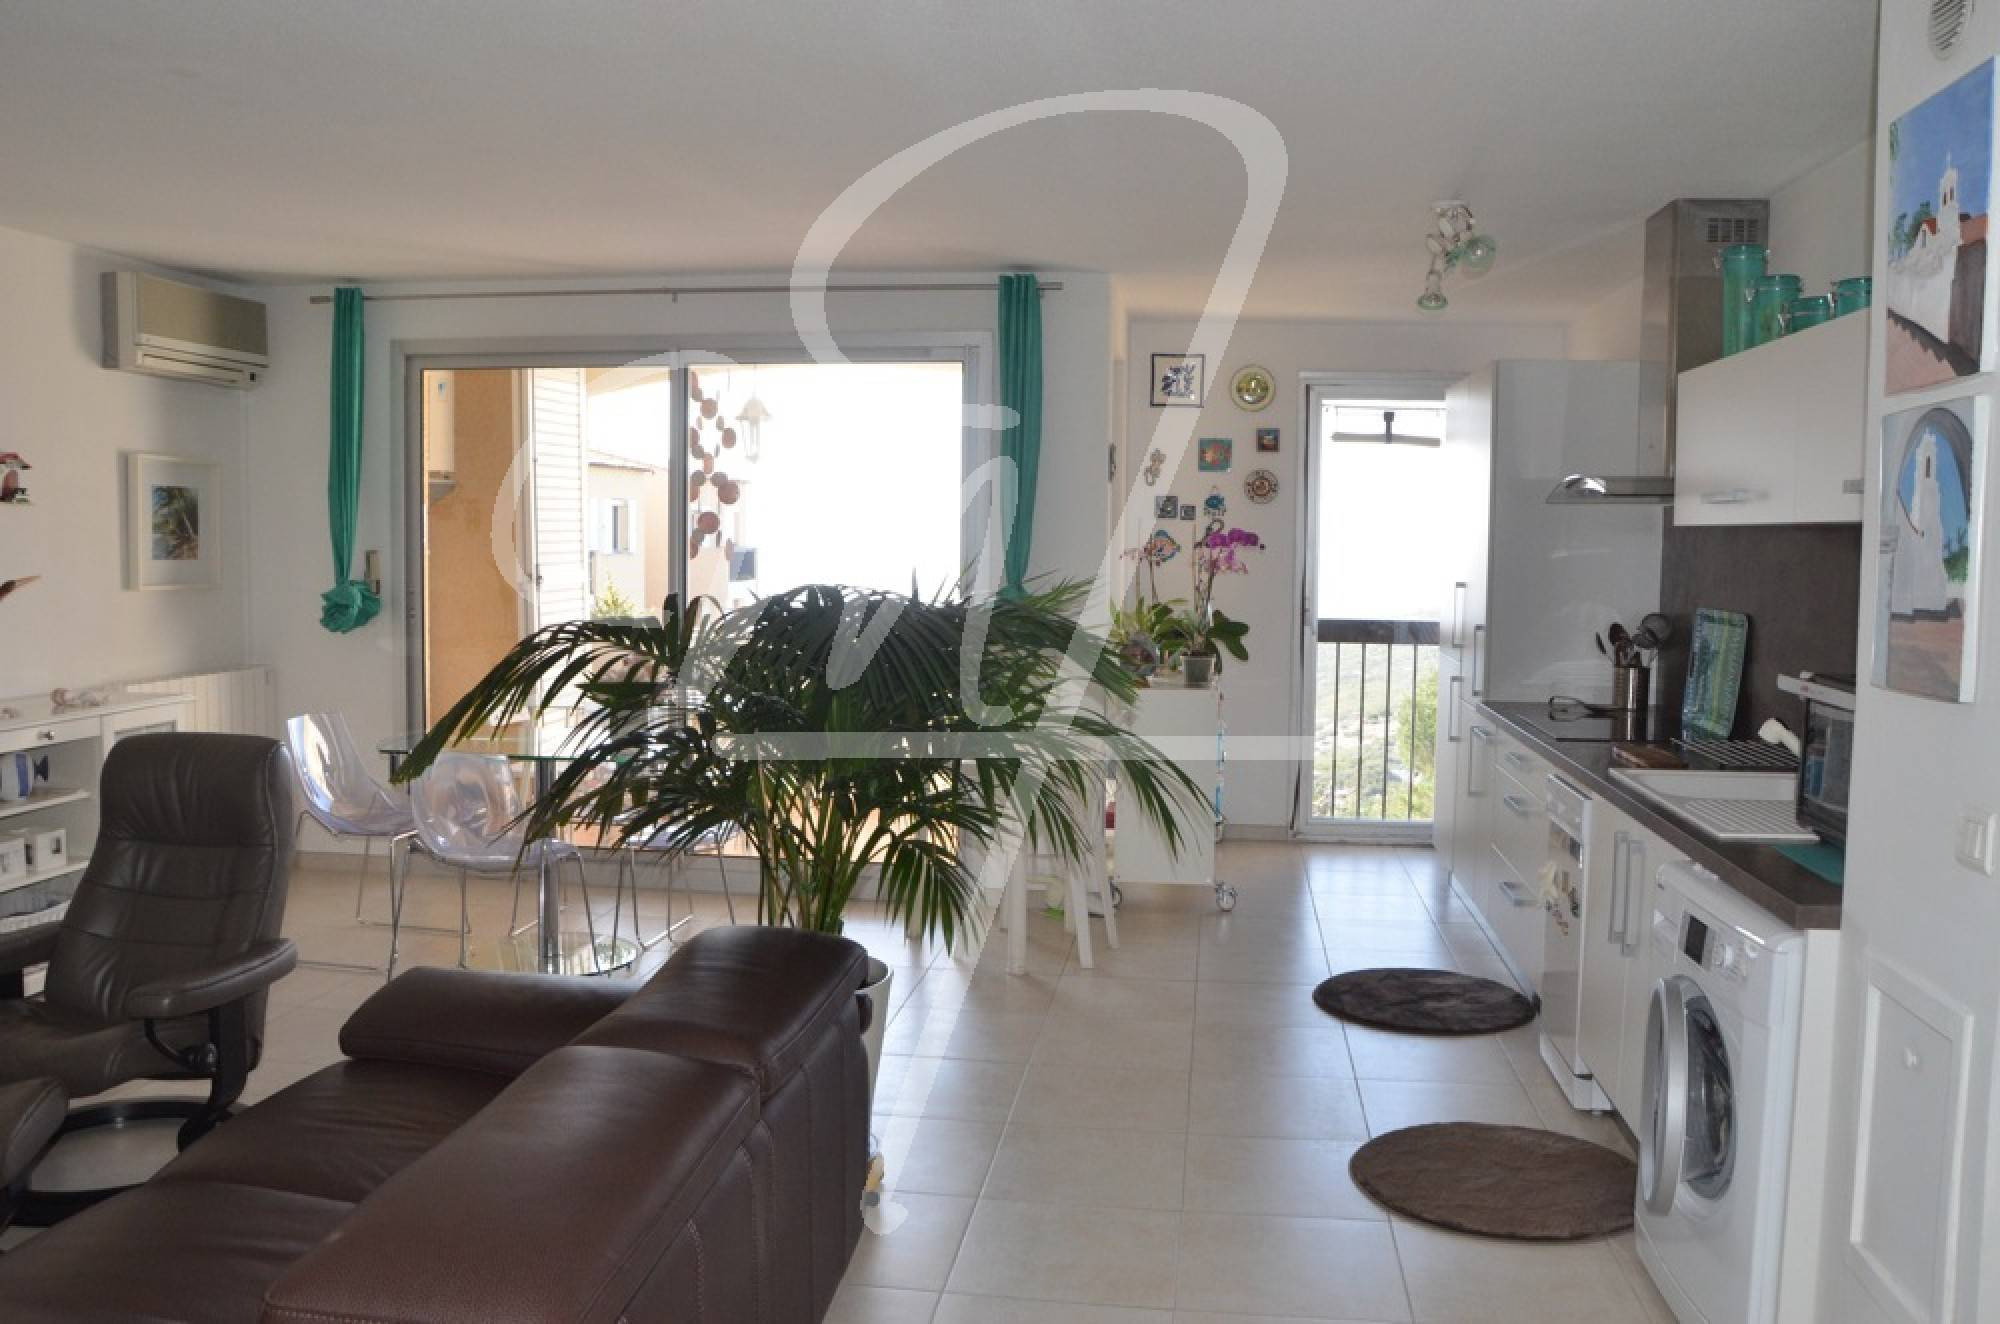 Vente Appartement T3 cassis hauteurs terrasse, 2 places de parkings privatives en sous sol